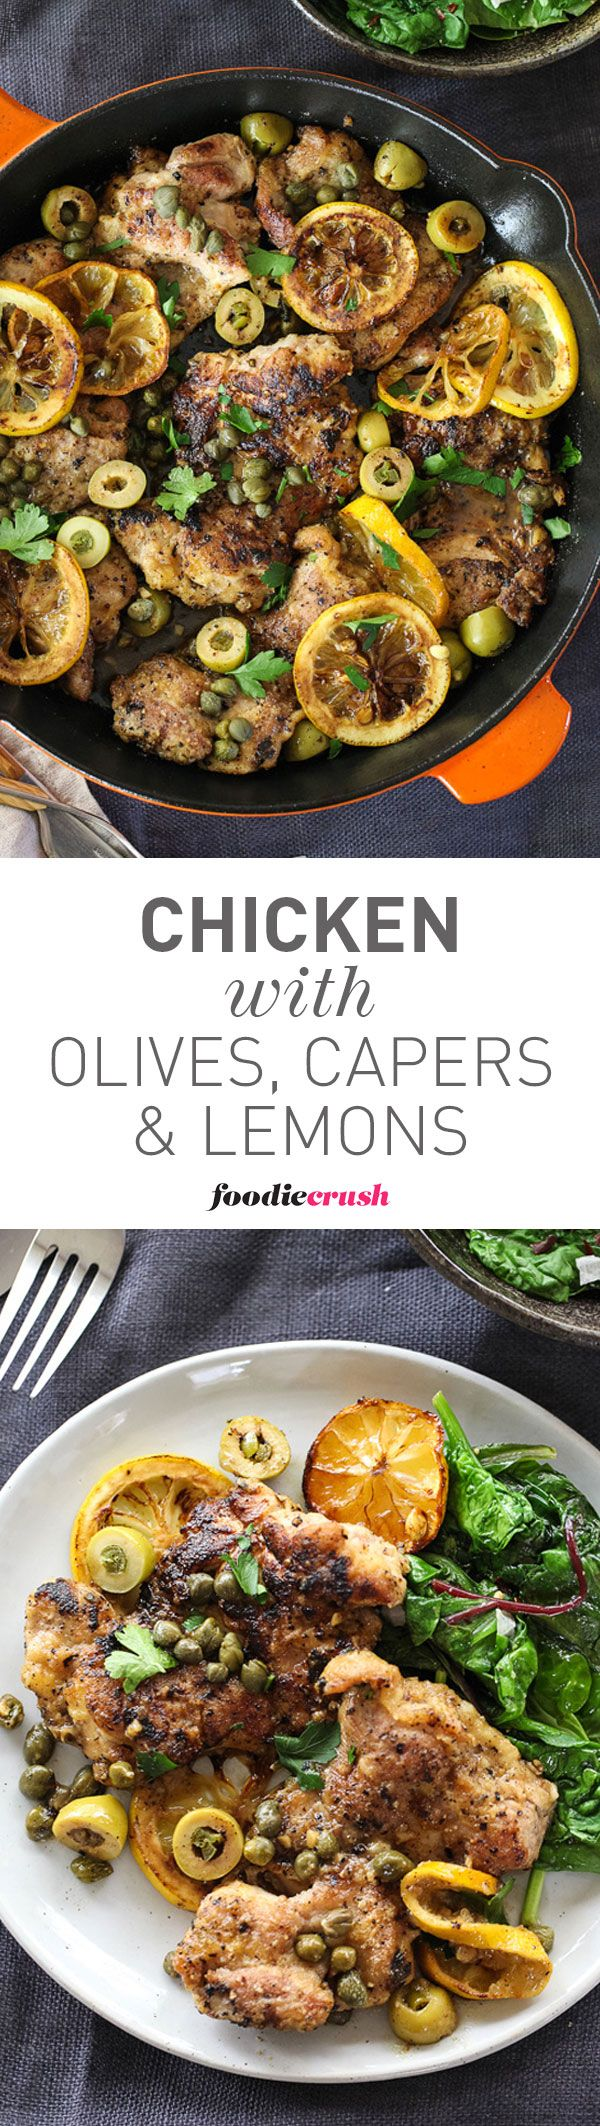 I love chicken thighs because they stay juicy when cooking. The Mediterranean flavors really shine in this easy weeknight chicken dinner   foodiecrush.com